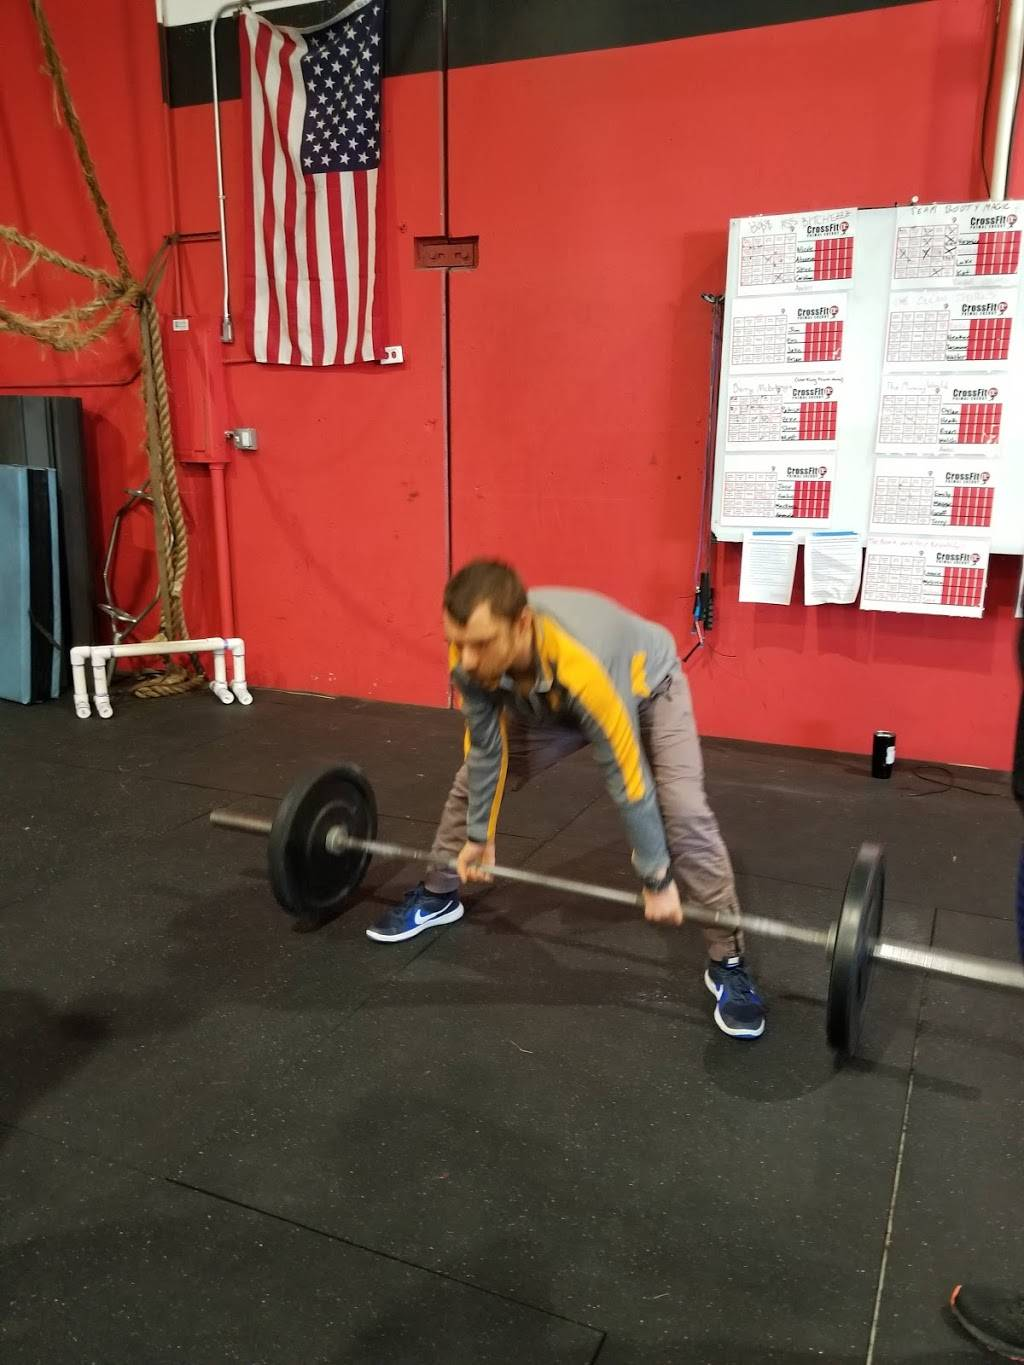 CrossFit Primal Energy - gym    Photo 8 of 10   Address: 2820 SE 8th Ave, Portland, OR 97202, USA   Phone: (971) 319-1750